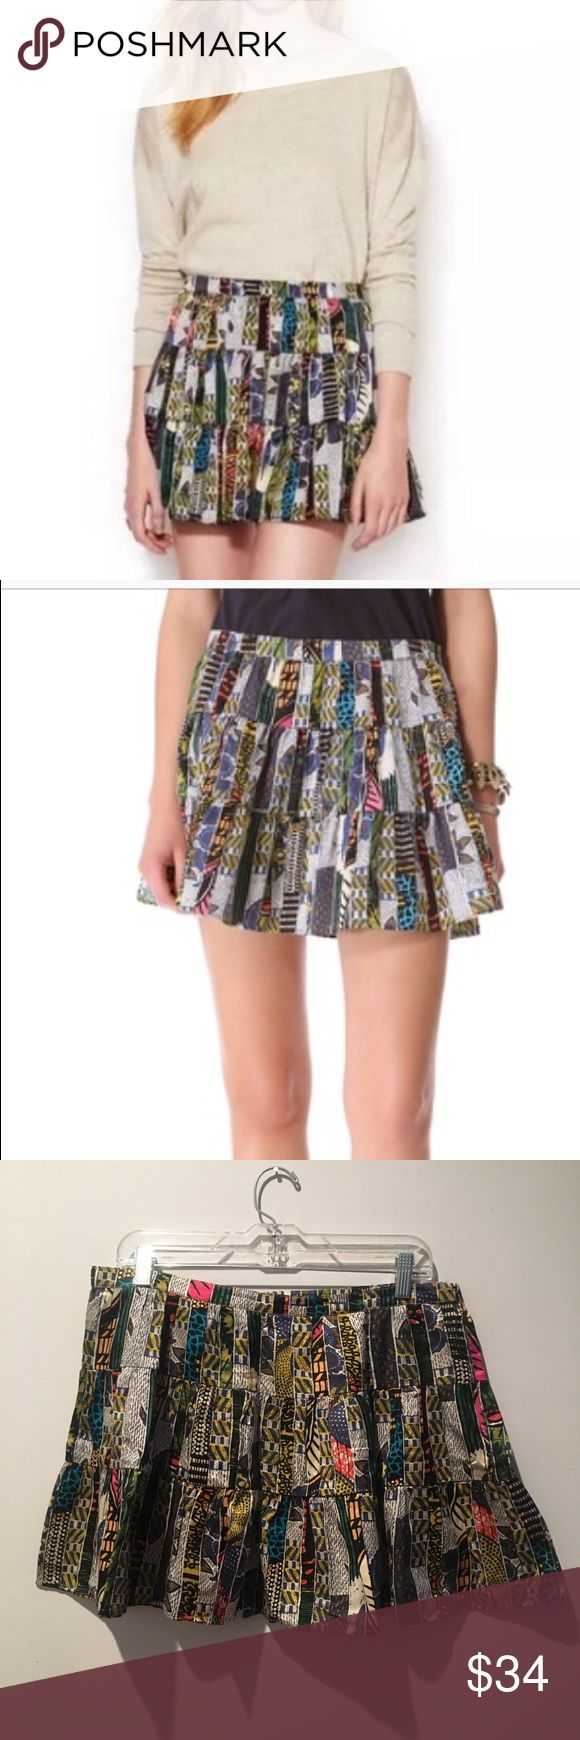 Burning Torch Ashanti Tiered Skirt - Anthropologie Baby it's cold outside but soon our legs will want to make an appearance again!  This short, tiered skirt gains a playful patchwork look from a colorful, batik-inspired print. Hidden side zip. Unlined.  Fabric: Voile. 65% cotton/35% silk. Imported  MEASUREMENTS Length: 17in across and 15in long. Size: Large  This skirt is worn once. It wasn't the right size for me and I made it work only once Burning Torch Skirts Mini